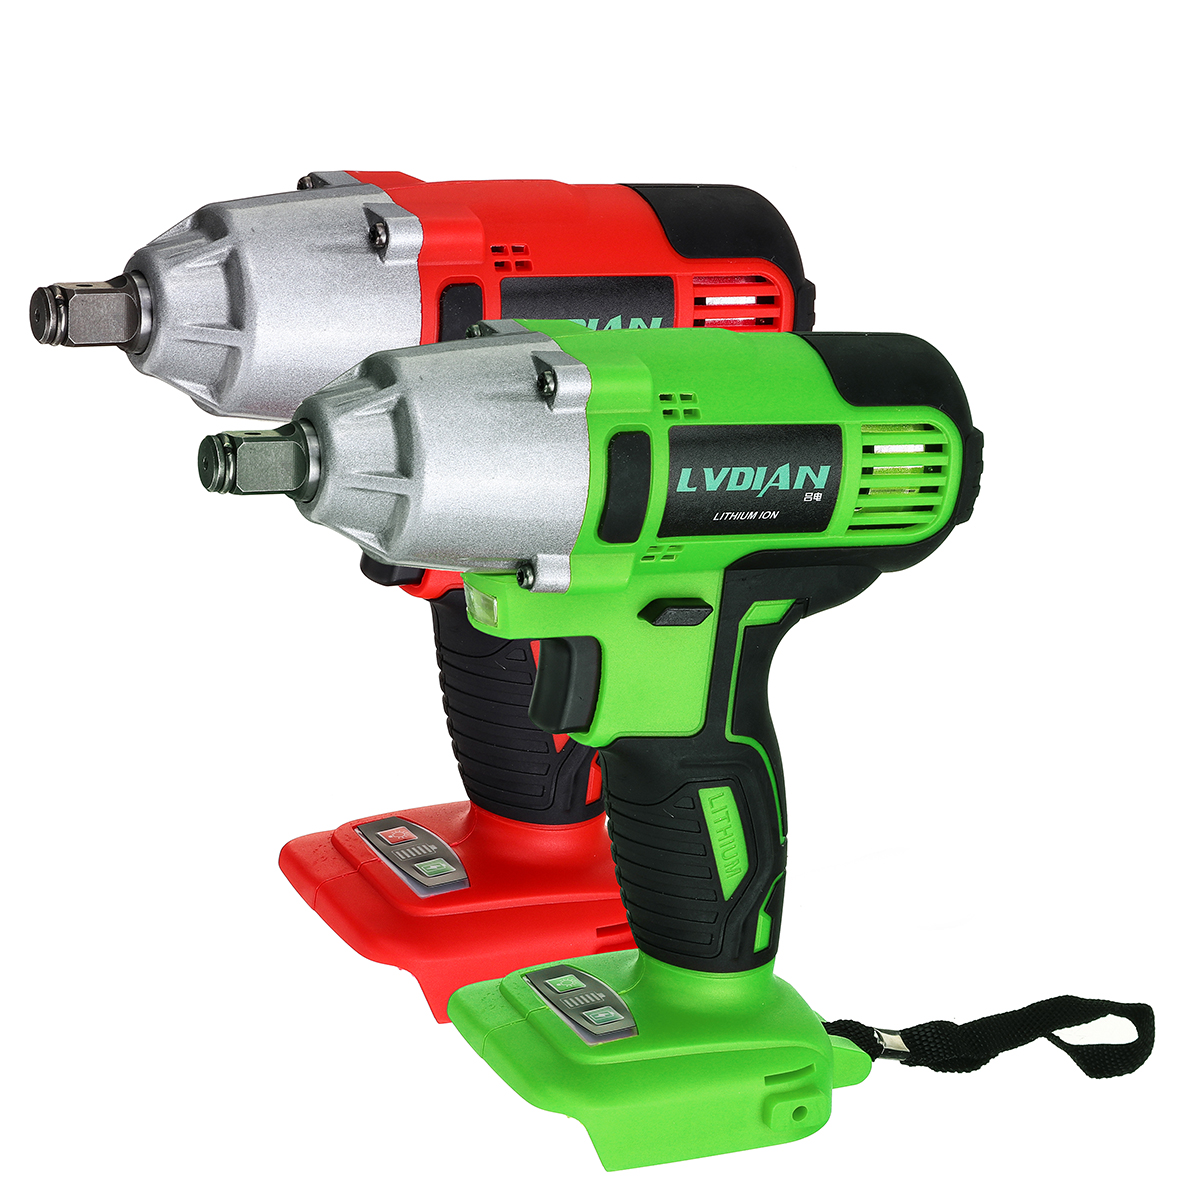 500 N.m Cordless Electric Impact Wrench with LED lights For DIY Home Building Engineering Car Repairing